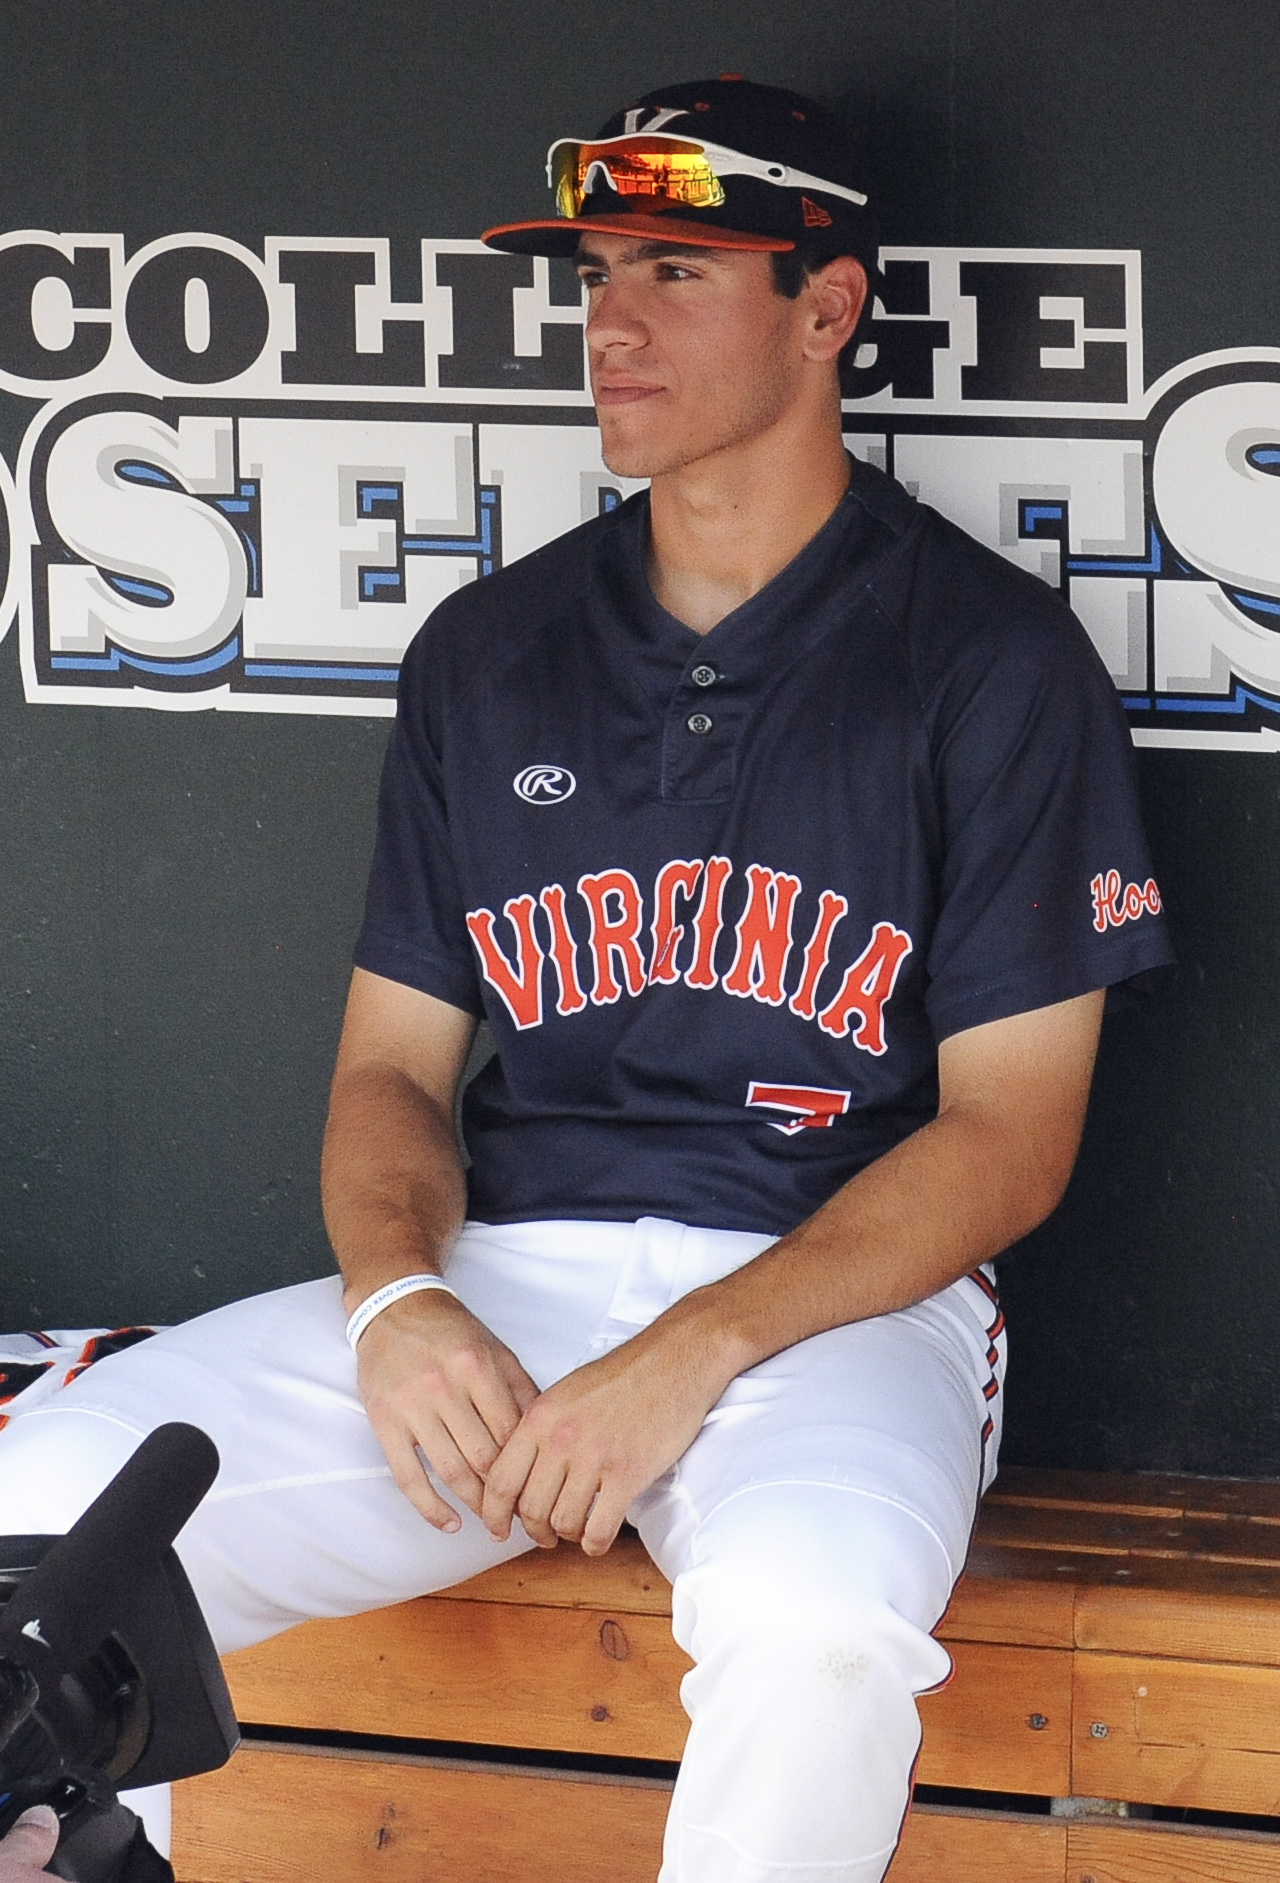 The face of Adam Haseley (pictured) when told he would be getting the ball tonight.